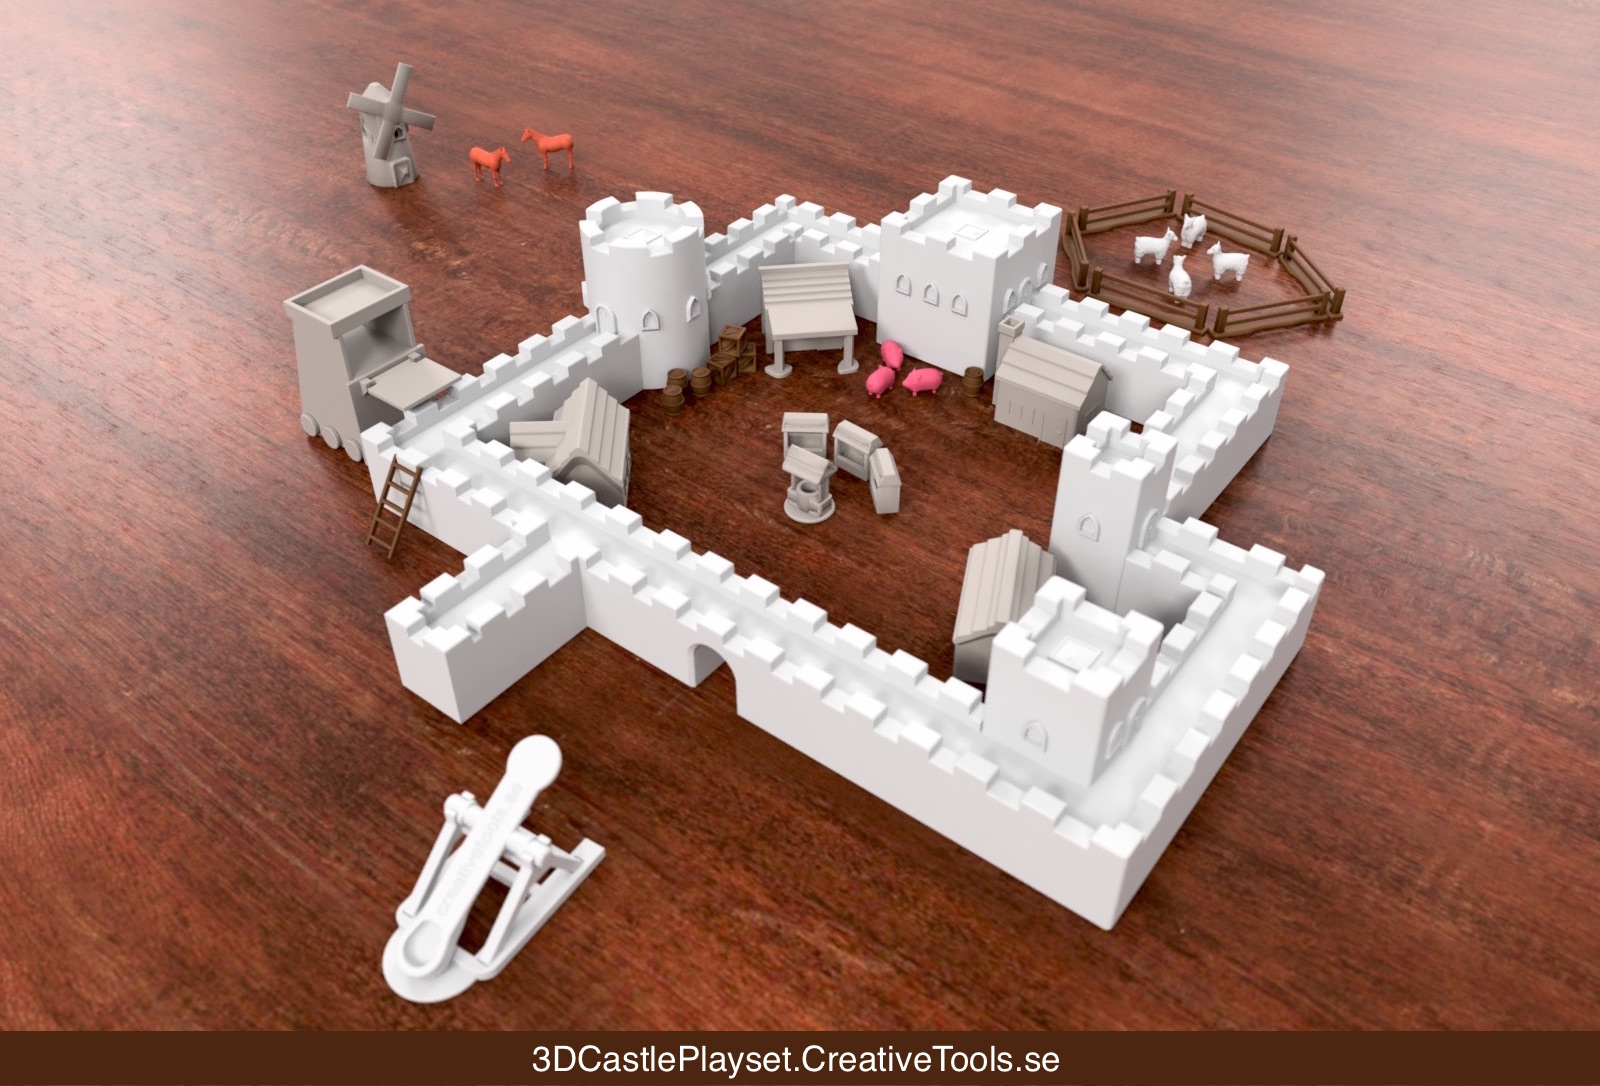 photo regarding 3d Printable Tools referred to as Modular Castle Playset (3D-printable)